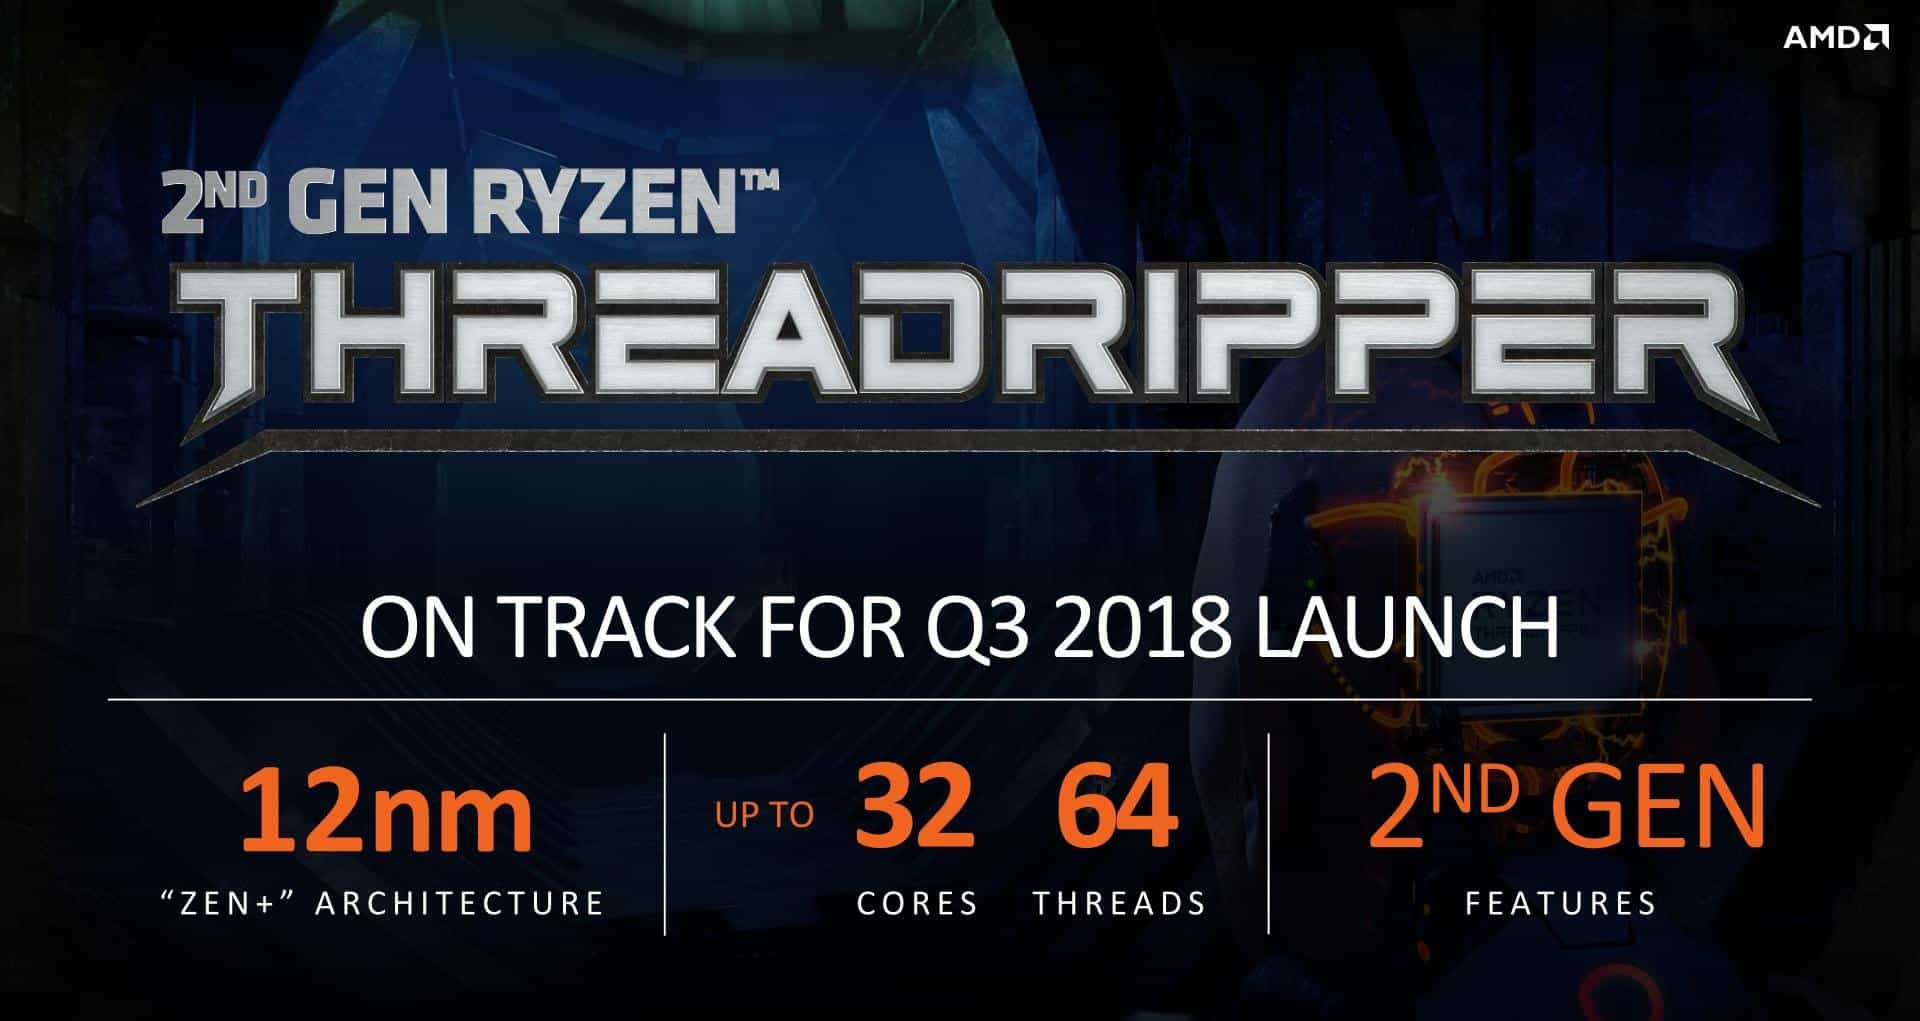 amd-computex2018-threadripper2000-slajd